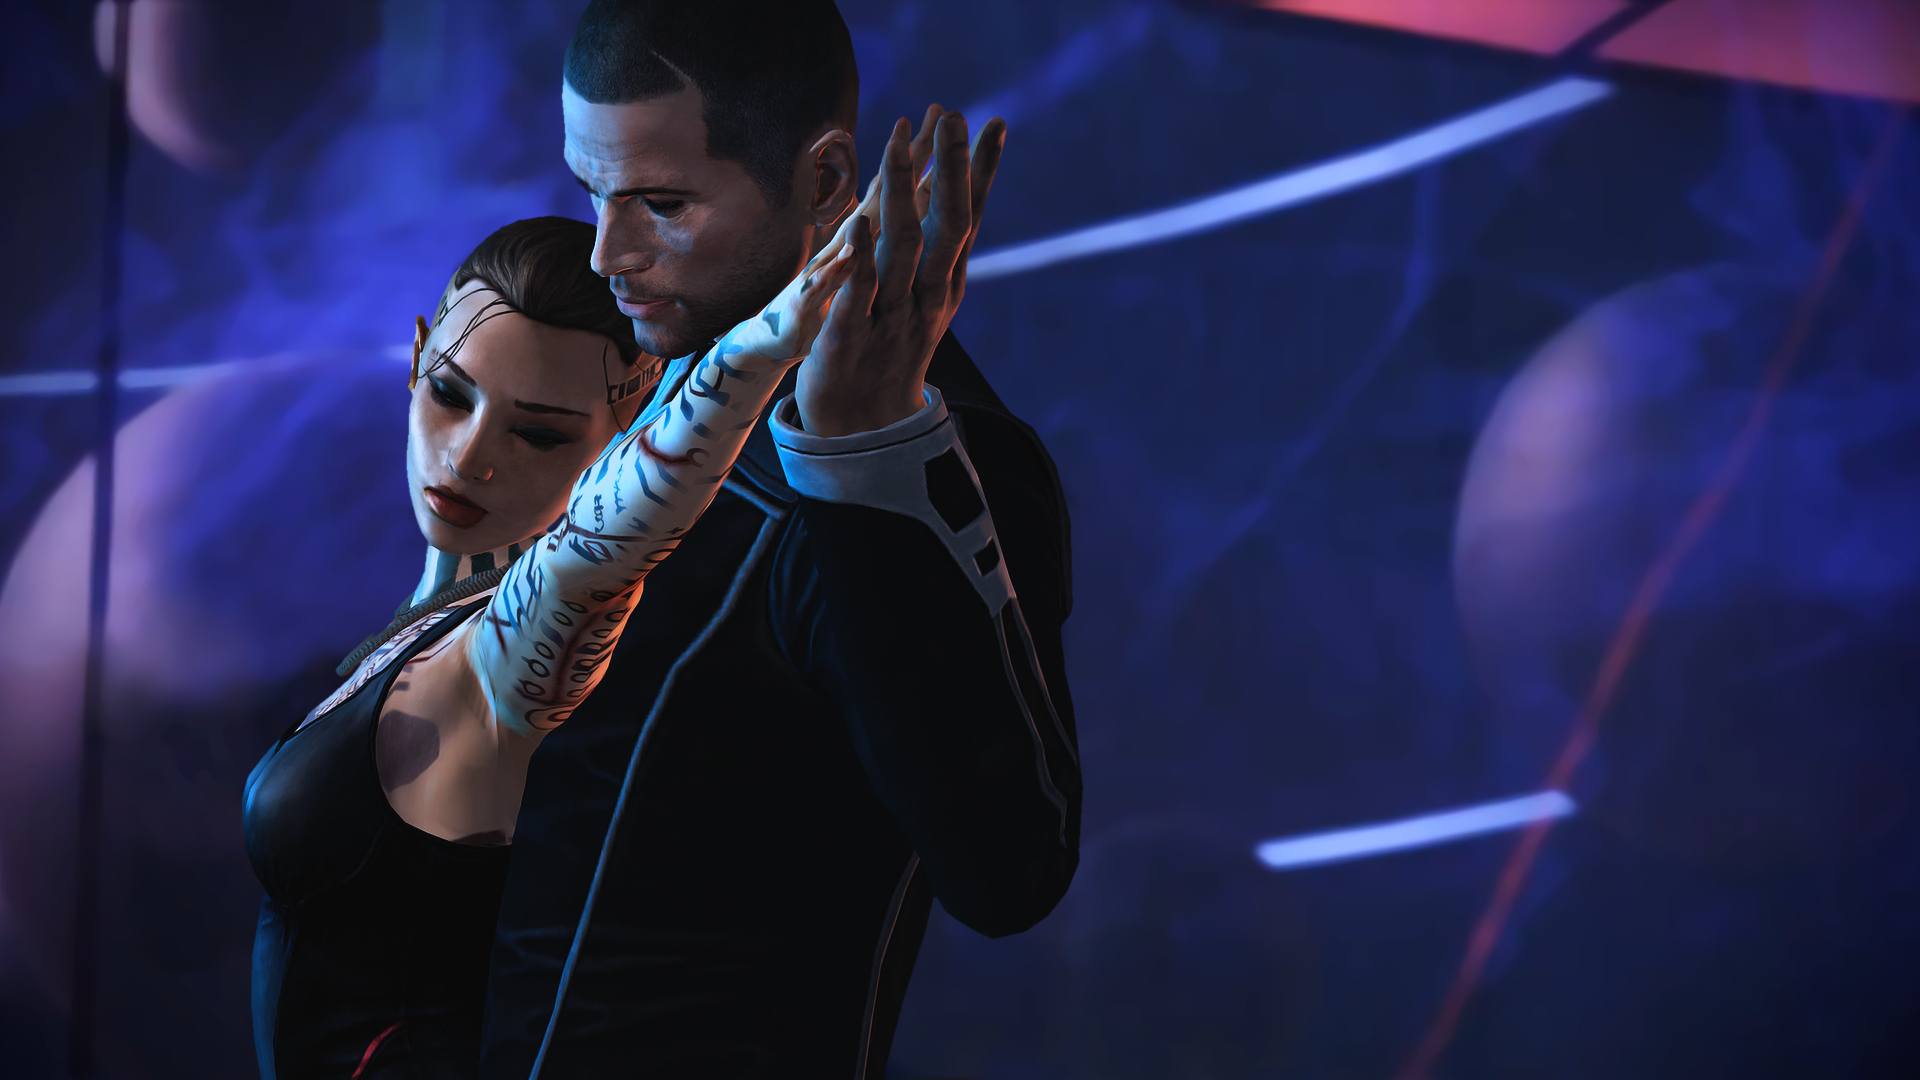 Shepard taking Jack out dancing (wallpaper) by Nightfable